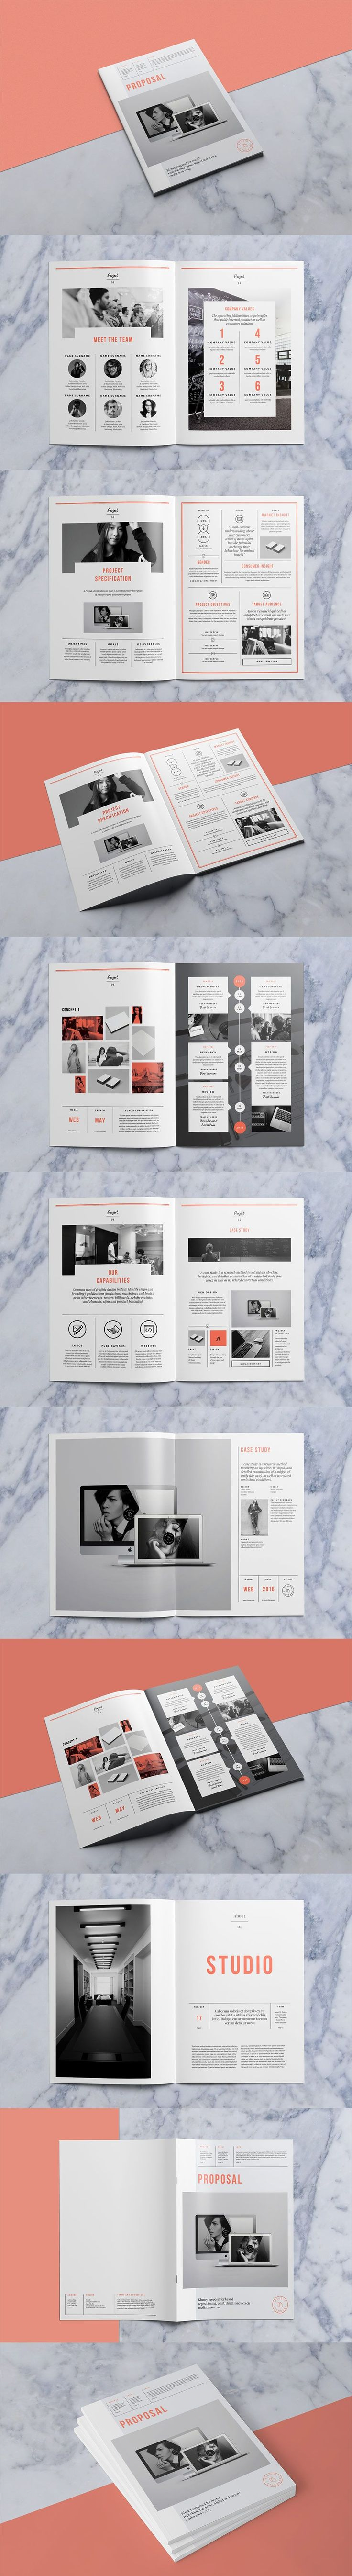 top ideas about editorial spreads the text utilisation de carreacute blanc et de couleur